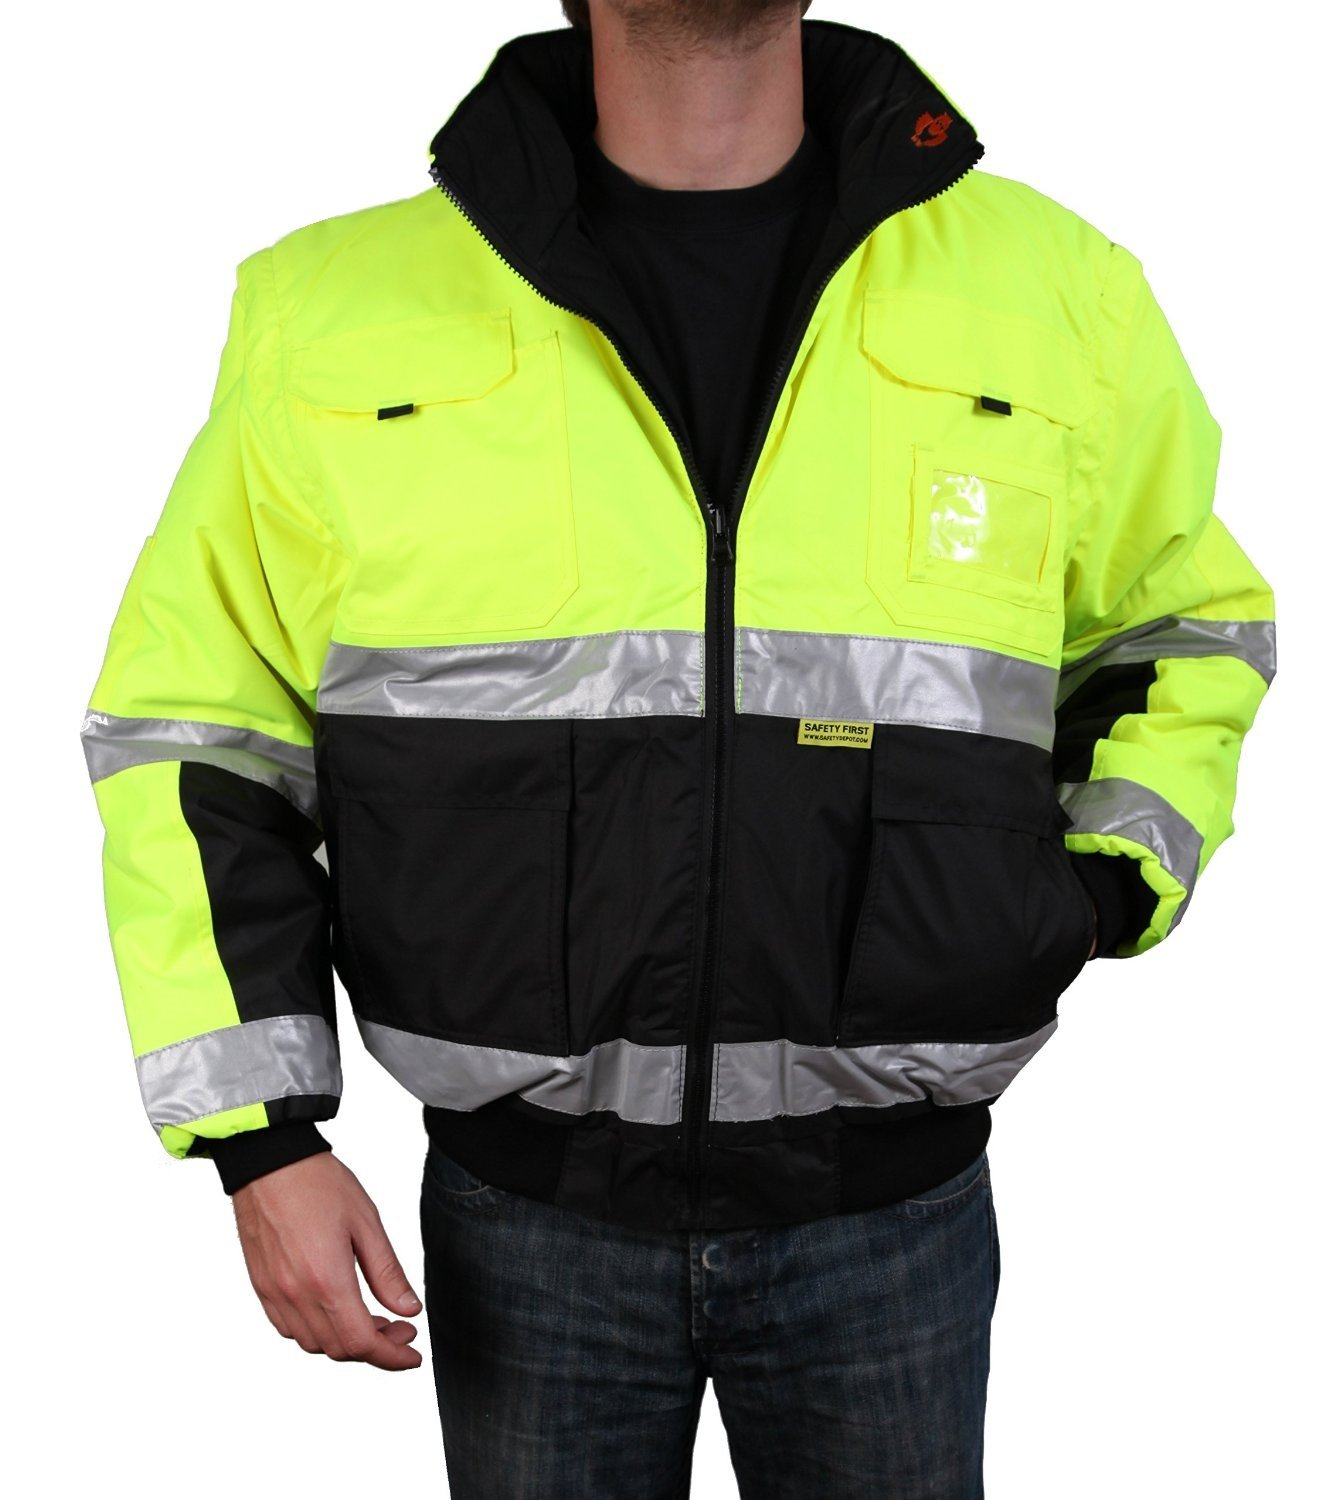 Safety Depot Safety Jacket Class 3 ANSI Approved 8 Pockets, Reversible Clear ID Pocket, Detachable Hood & 4 Pen Divider slots 350C (Lime, Large) by Safety Depot